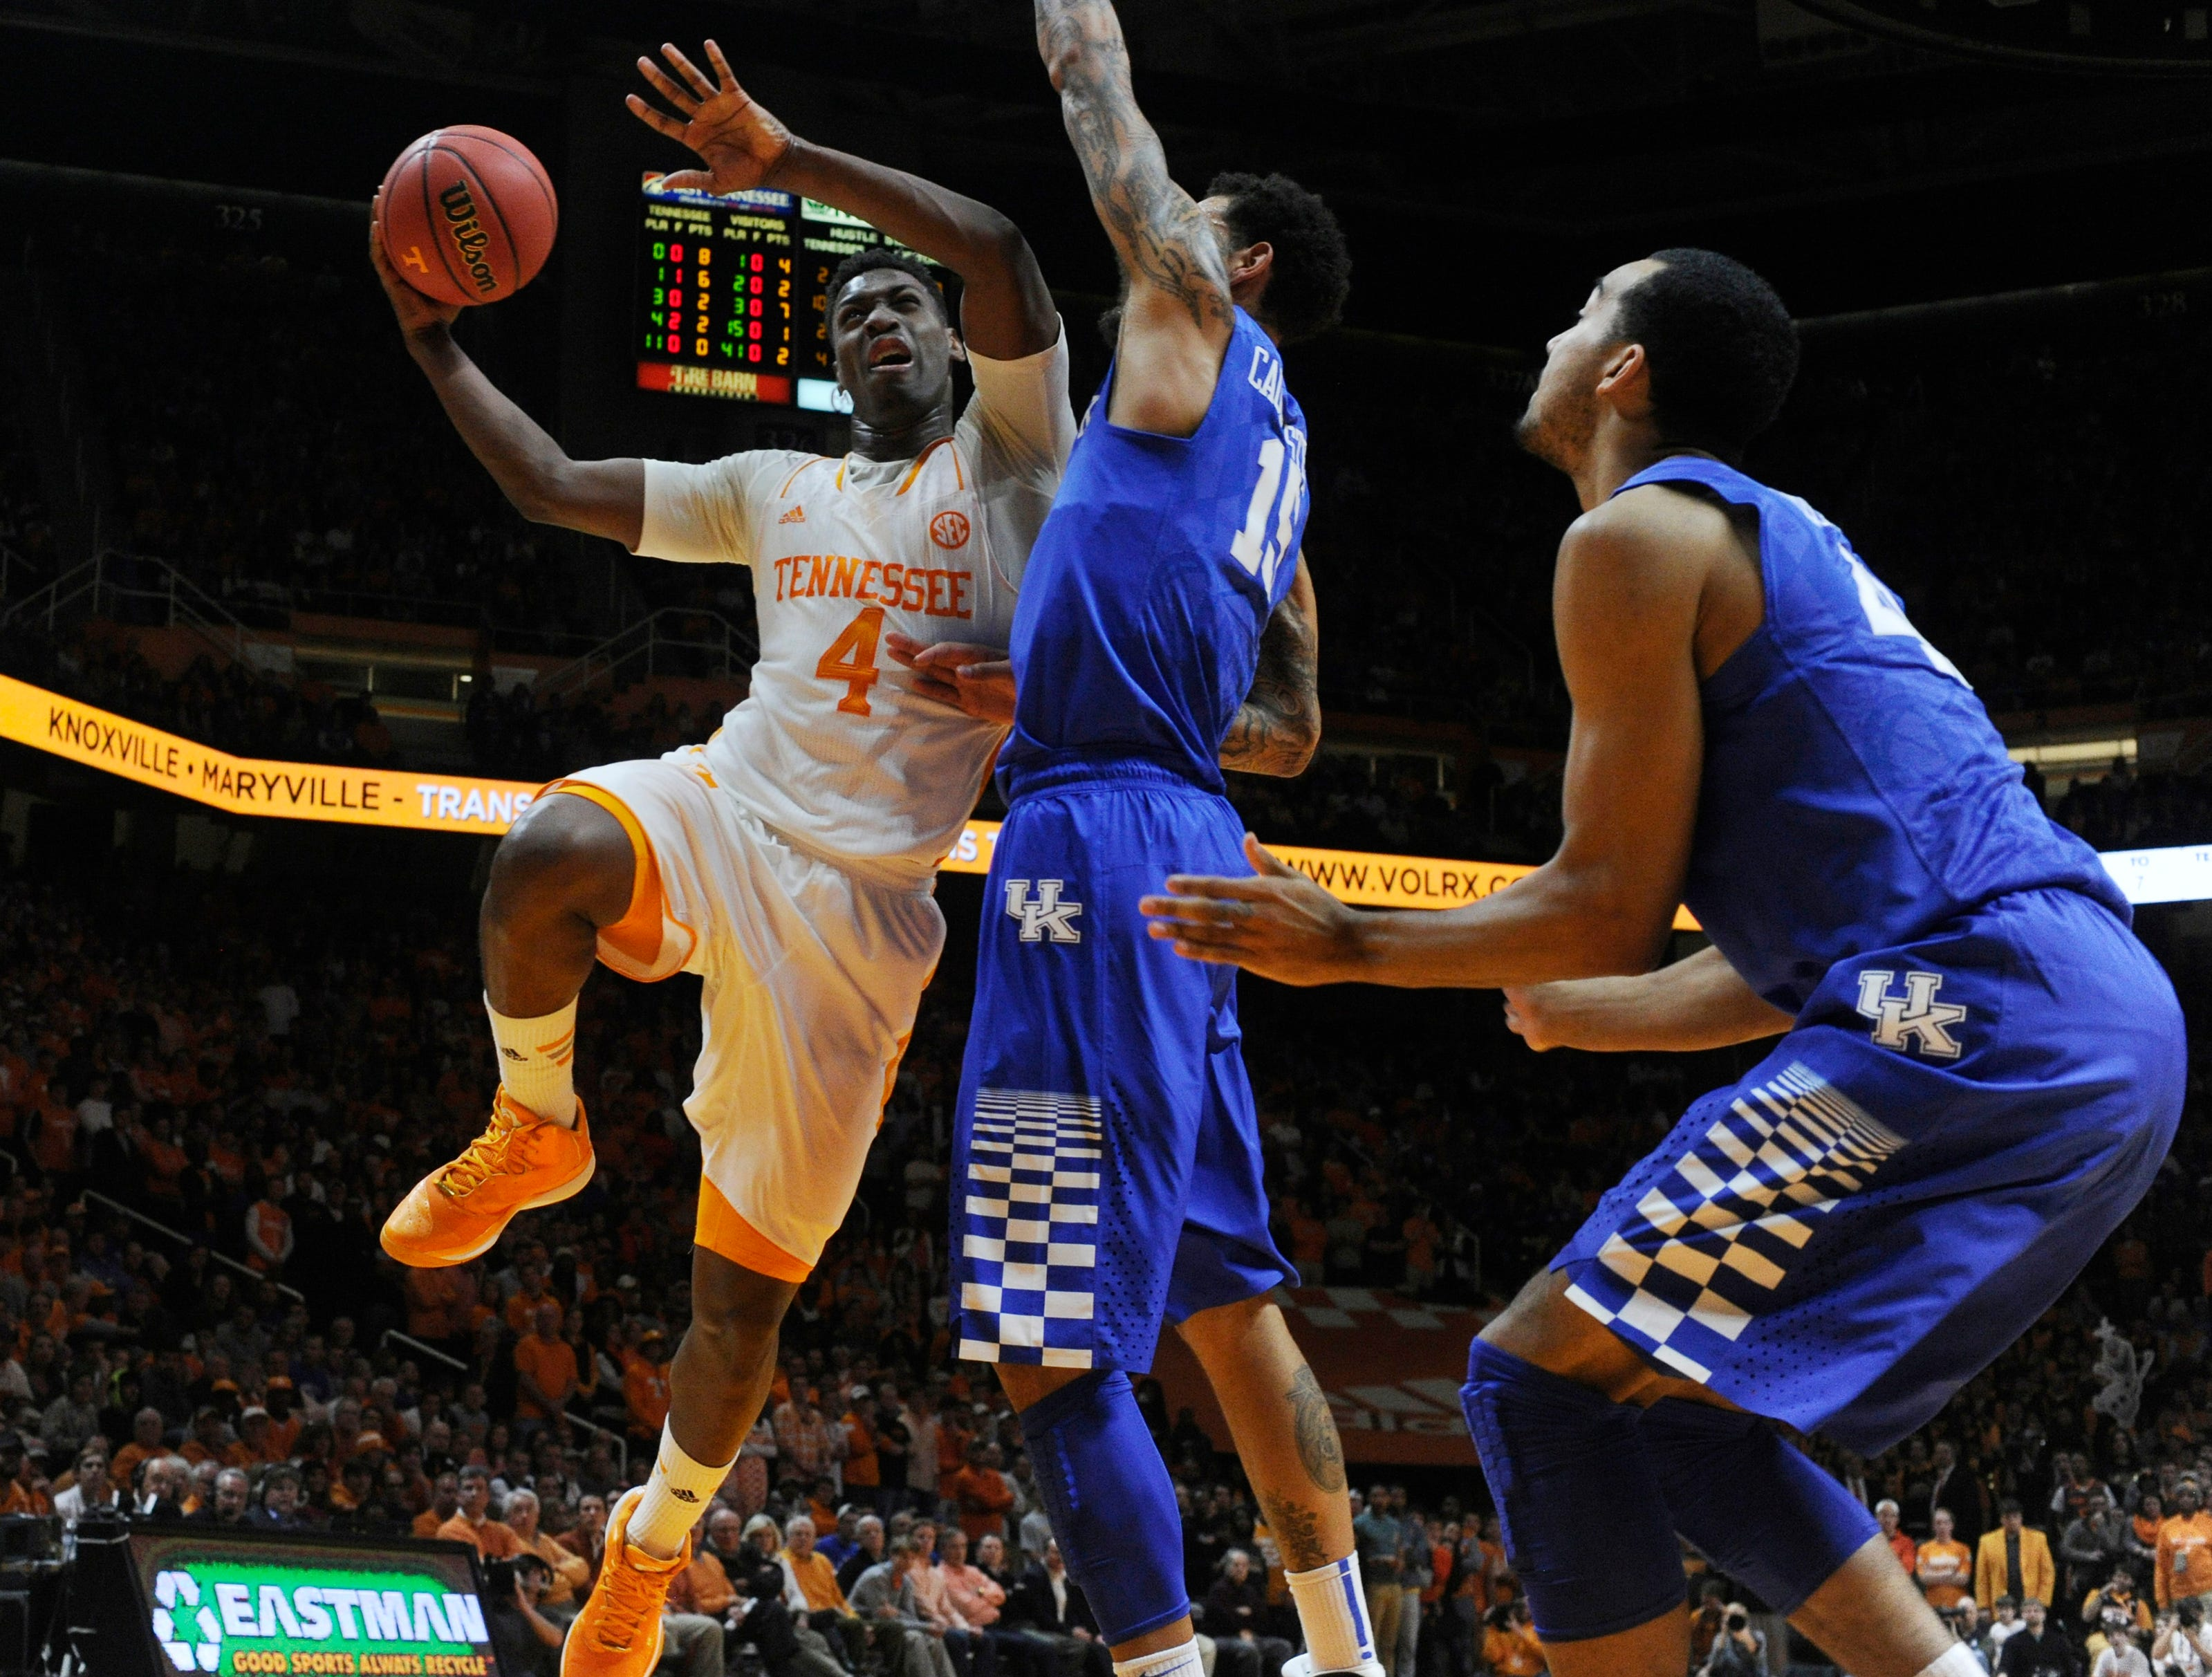 Tennessee guard Armani Moore (4) drives to the basket against Kentucky guard Willie Cauley-Stein (15) during the first half at Thompson-Boling Arena in Knoxville on Tuesday, Feb. 17, 2015.